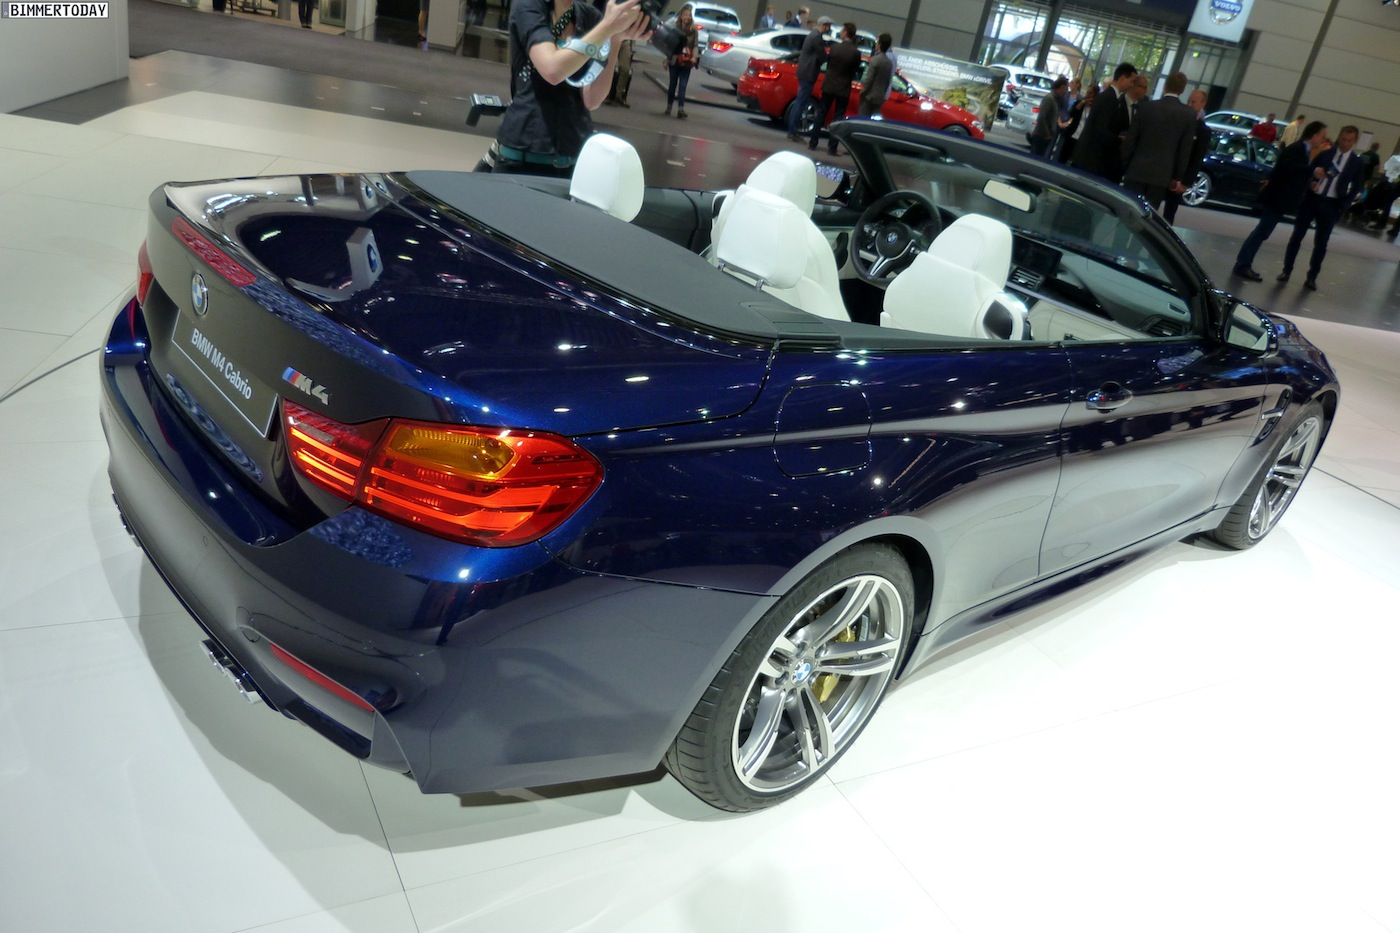 blue convertible bmw m4 - photo #43